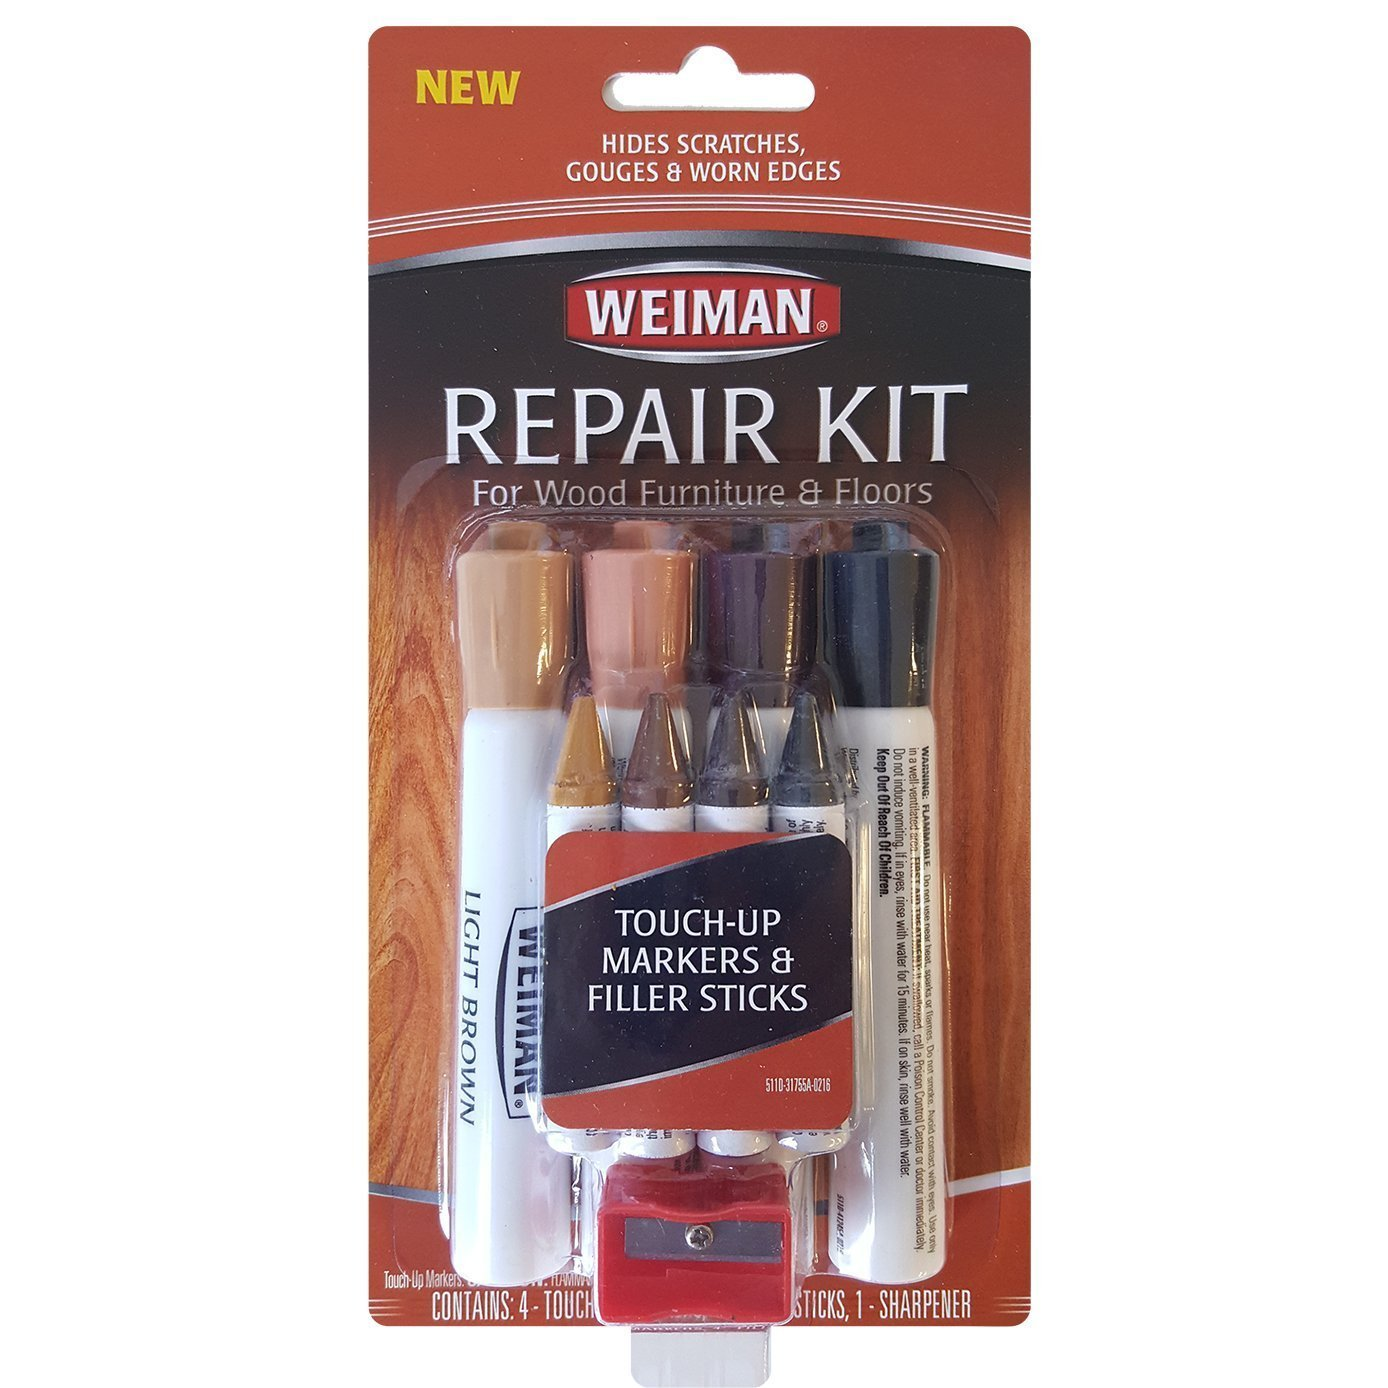 Weiman Repair Kit (4 filler sticks & 4 touch up markers) 2-Pack by Weiman